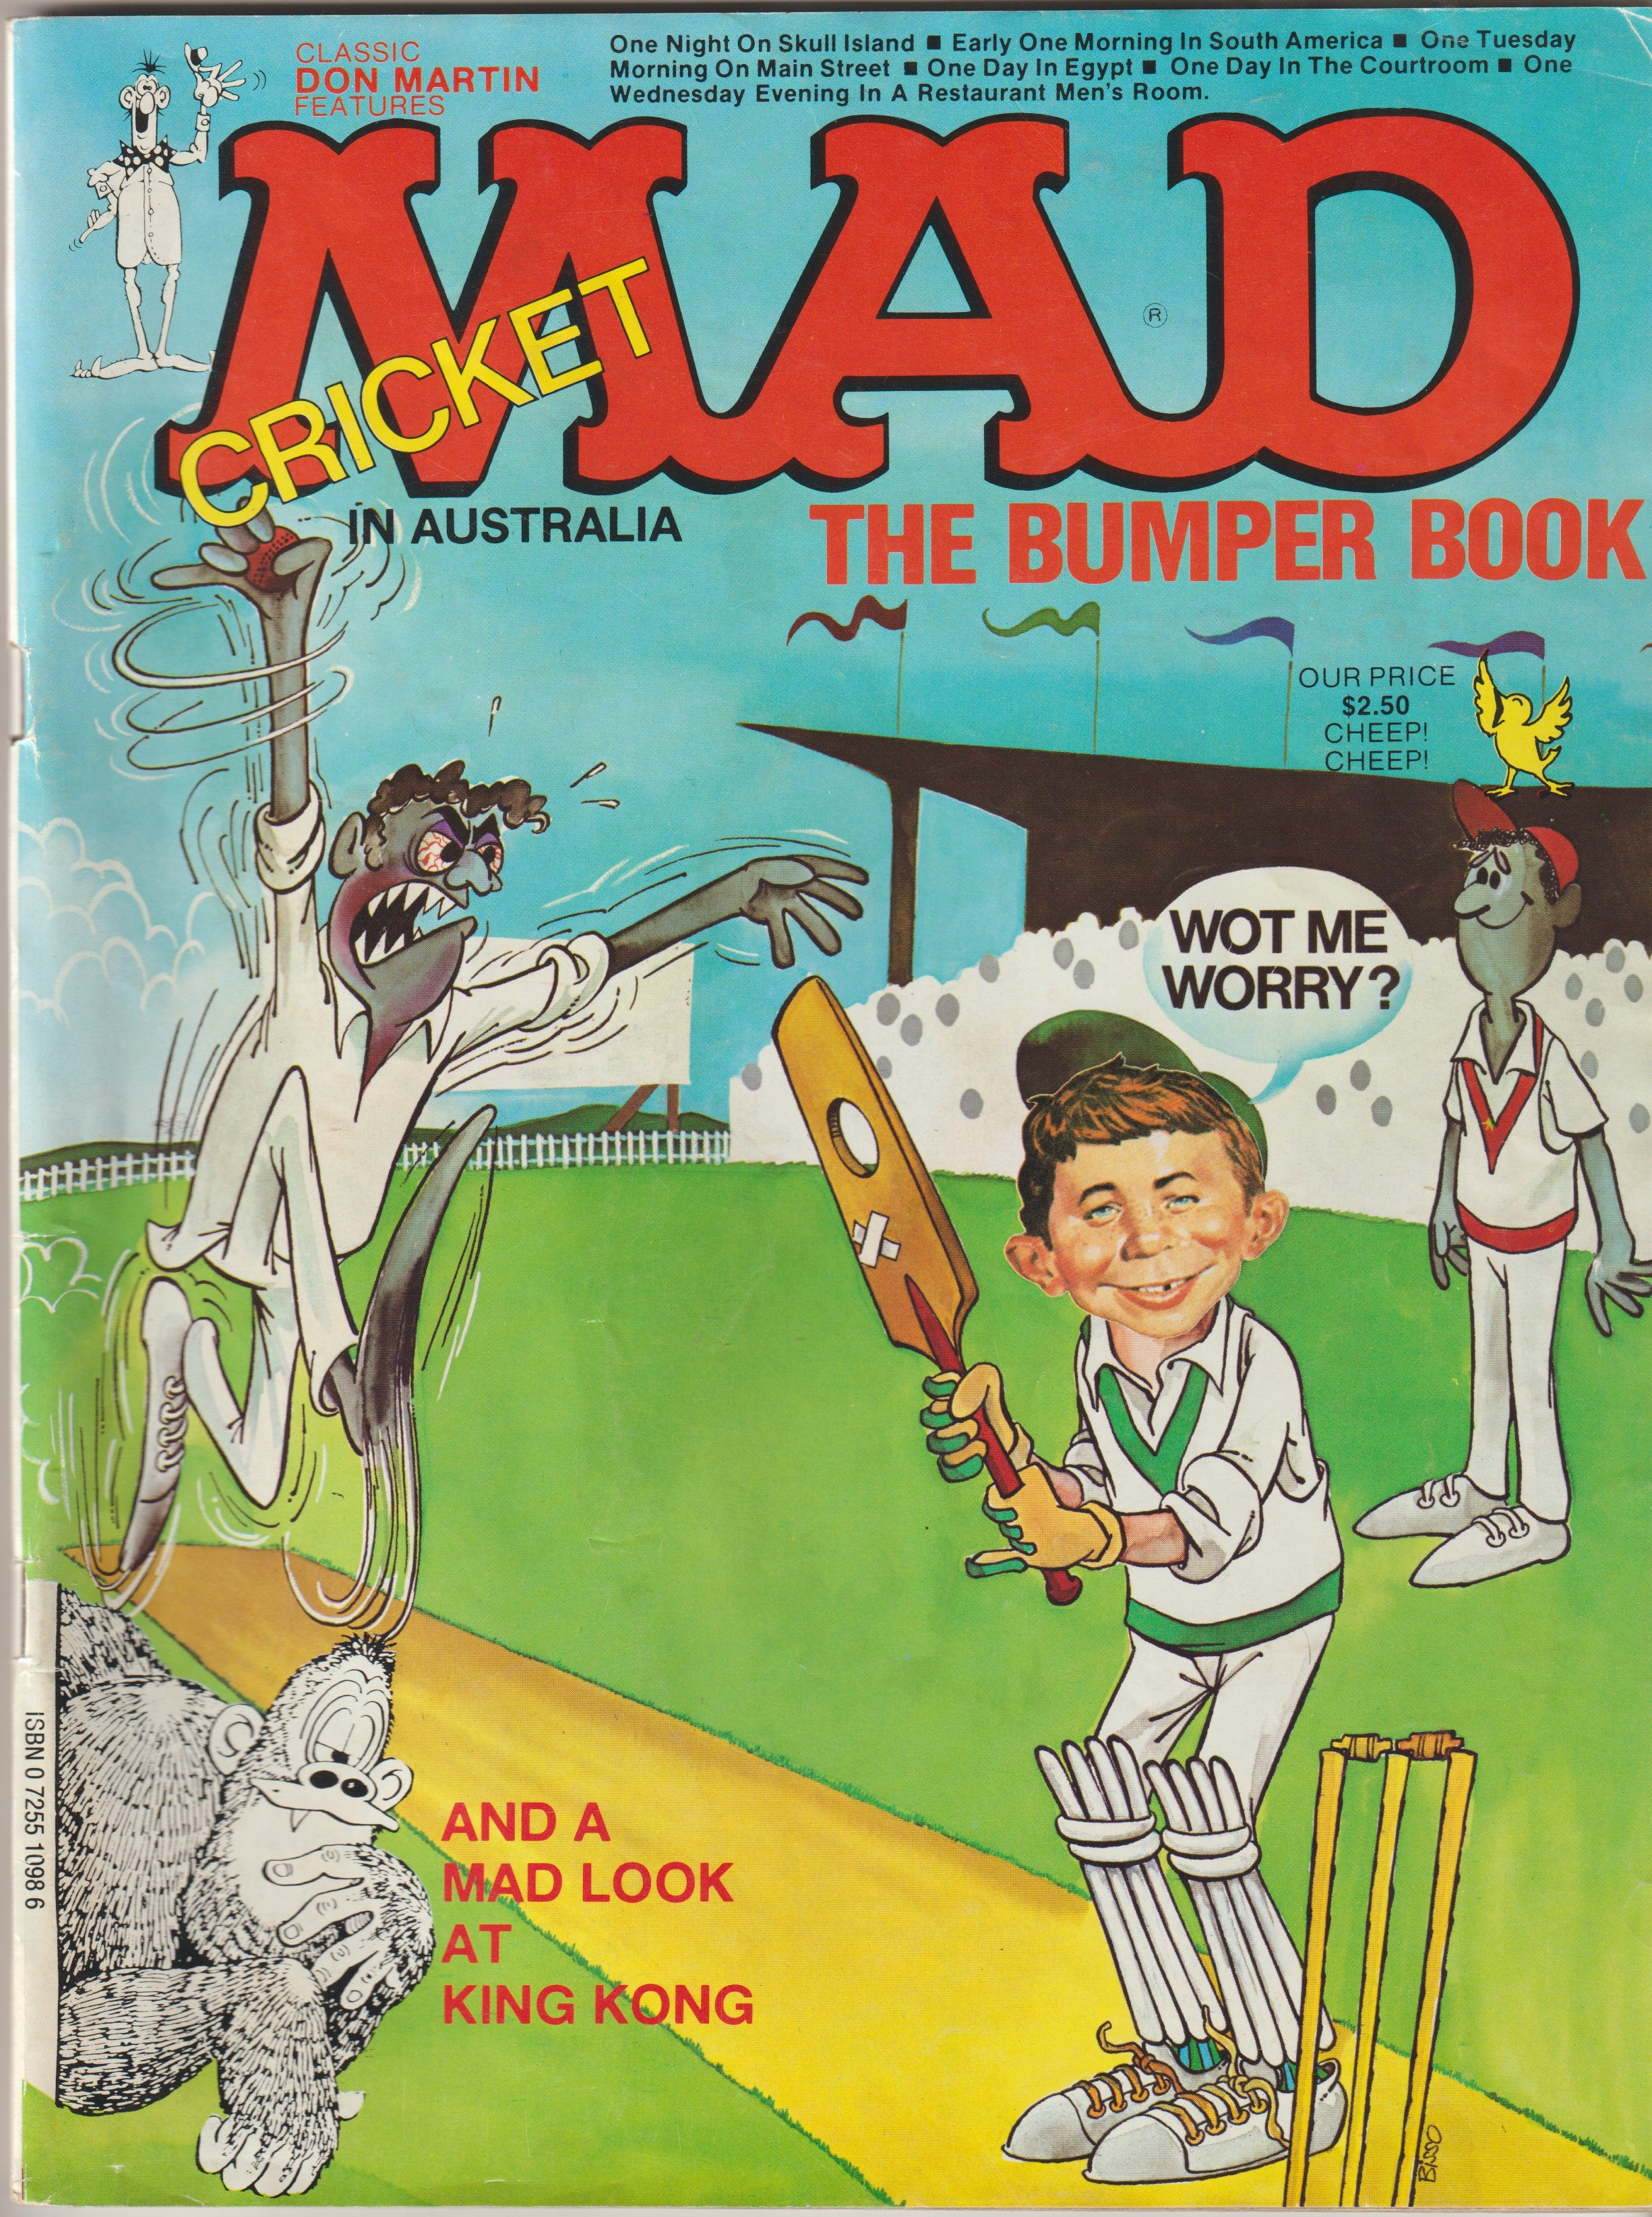 The bumber book of MAD Cricket • Australia